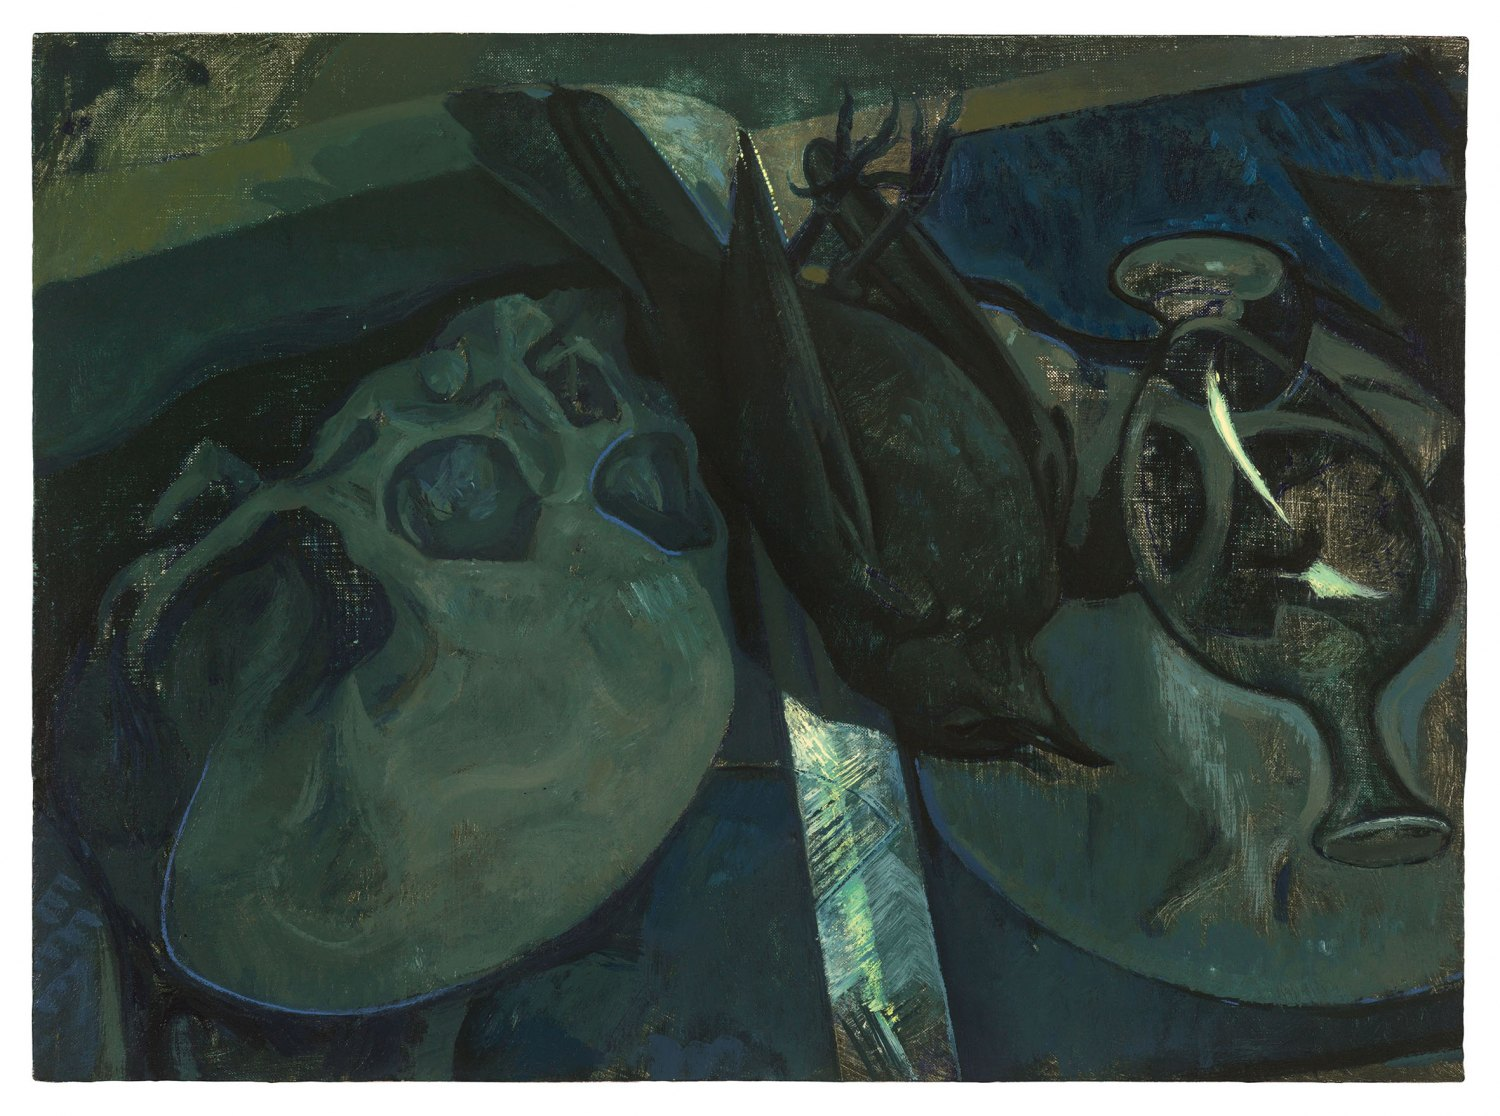 Victor Man Two Skulls After El Greco and Blackbird, 2017 Oil on canvas mounted on wood, 30 × 41 cm